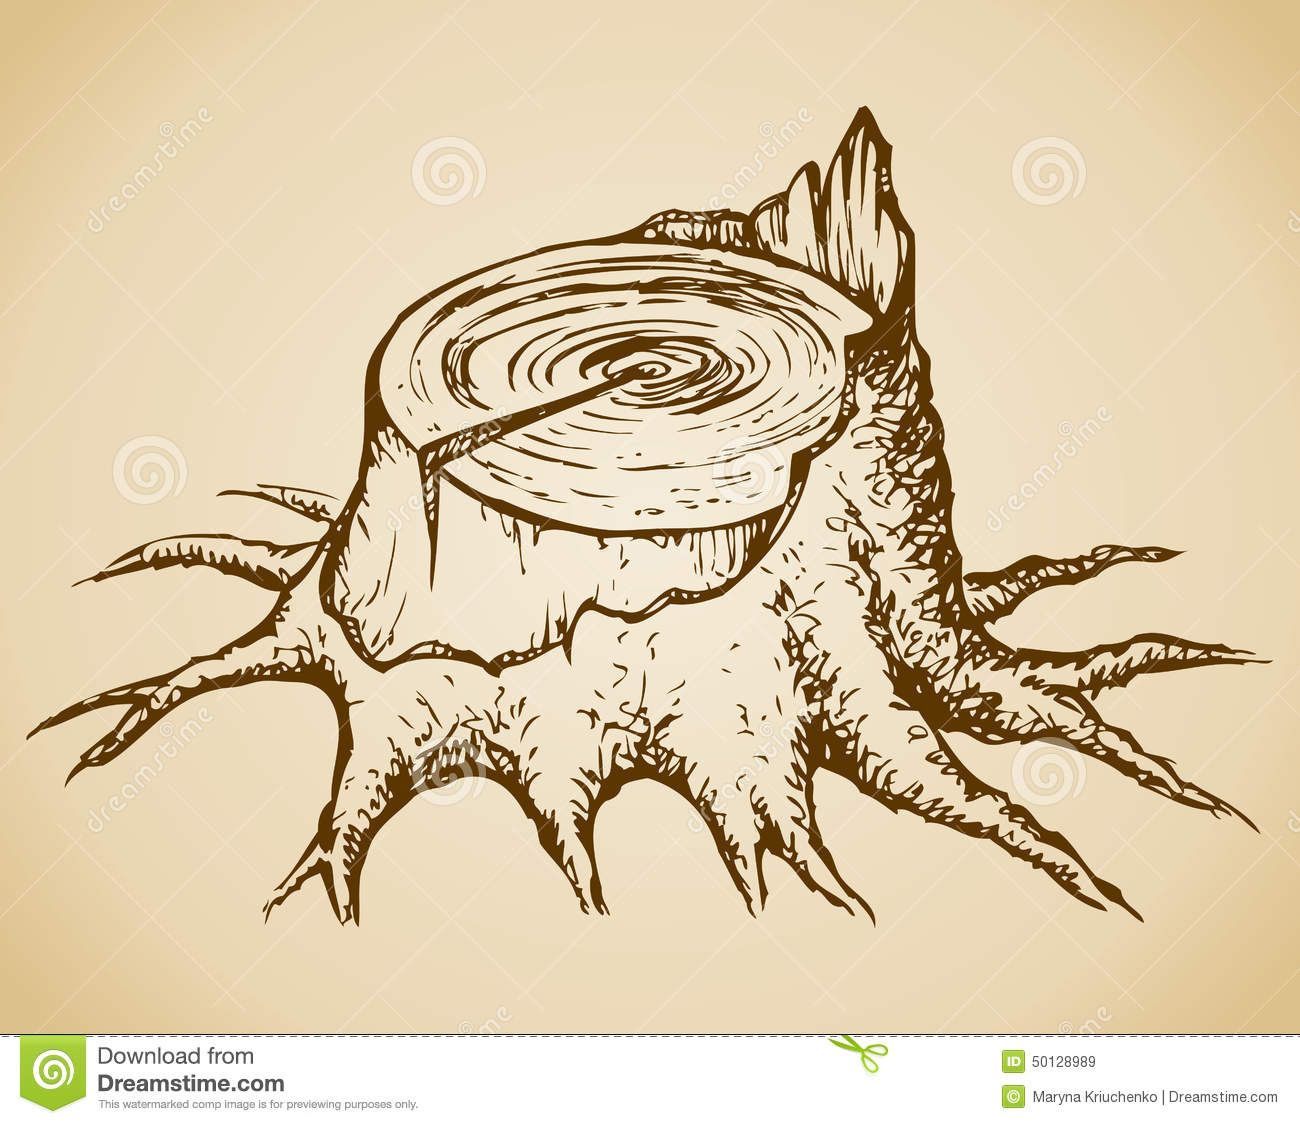 How to draw a cartoon tree stump step by step - Free & Easy ...